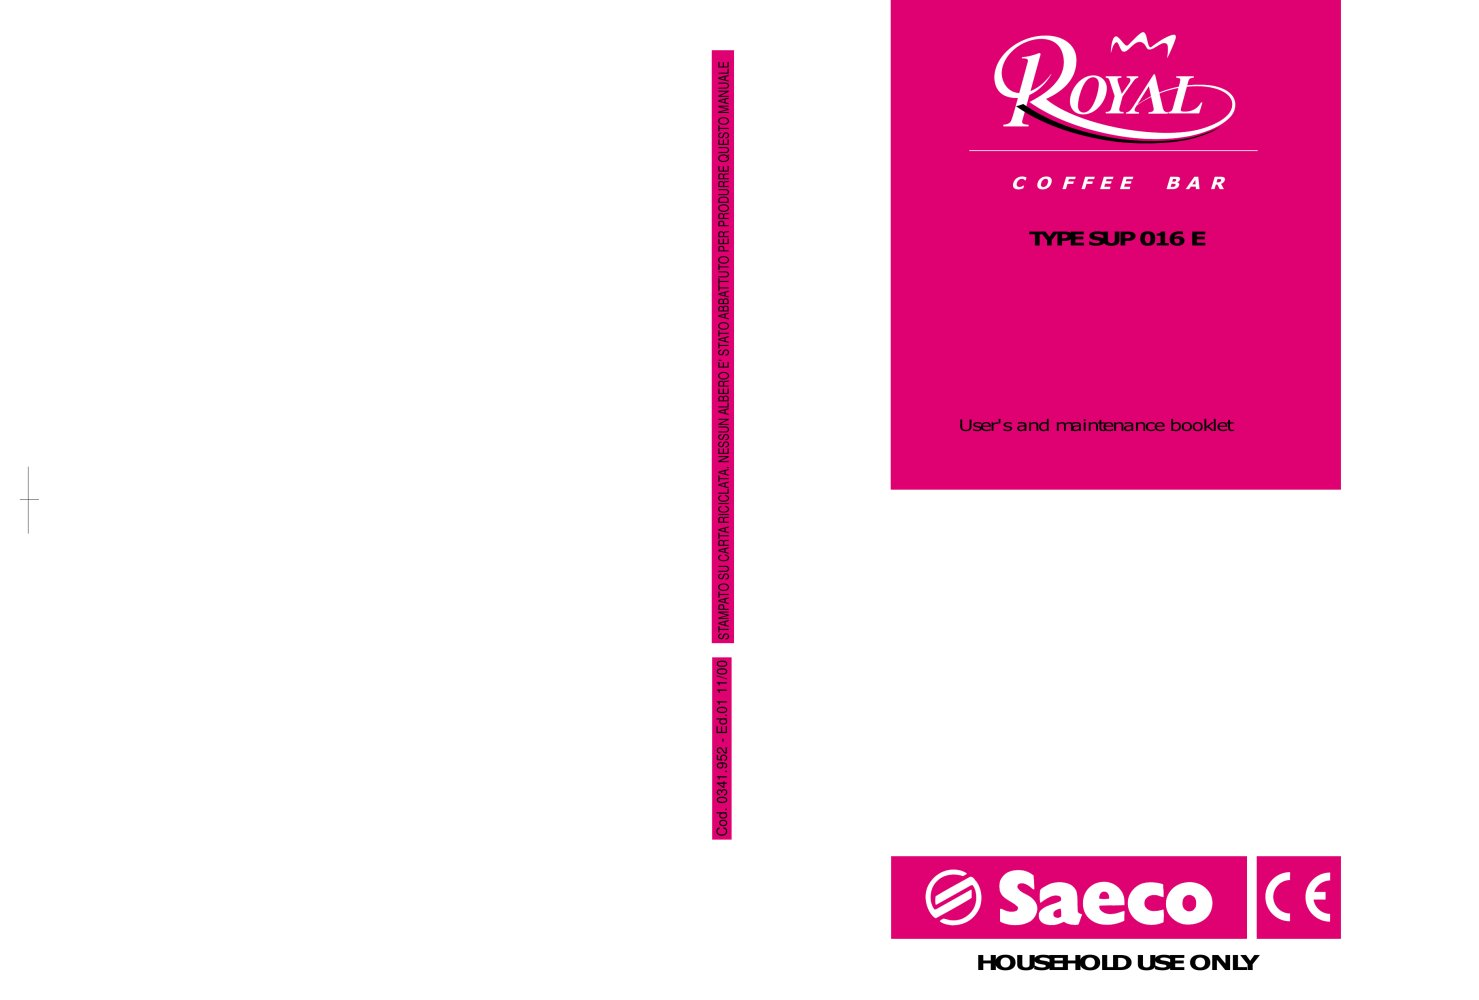 Saeco 8p Service Manual Ebook Block Diagram Okifax50505300 Talea Giro Plus Home Appliance Coffee Array Royal Bar Pdf Catalogues Documentation Brochures Rh Archiexpo Com